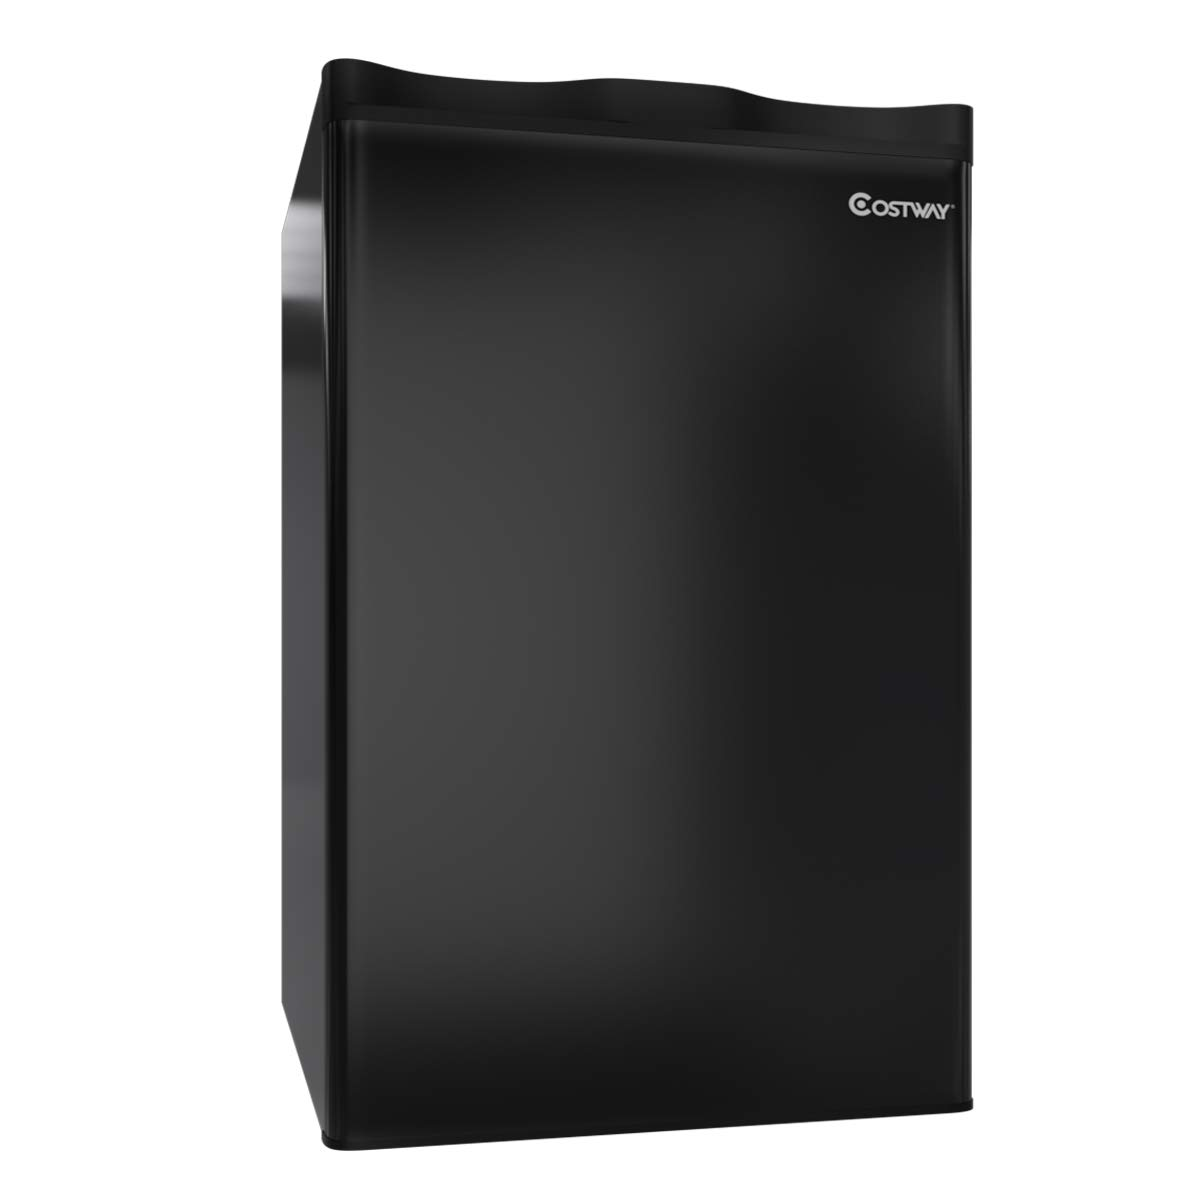 COSTWAY Compact Refrigerator, 3.2 cu ft. Mini Refrigerator Unit Small Single Door Freezer Cooler Fridge for Dorm, Office, Apartment (Black) by COSTWAY